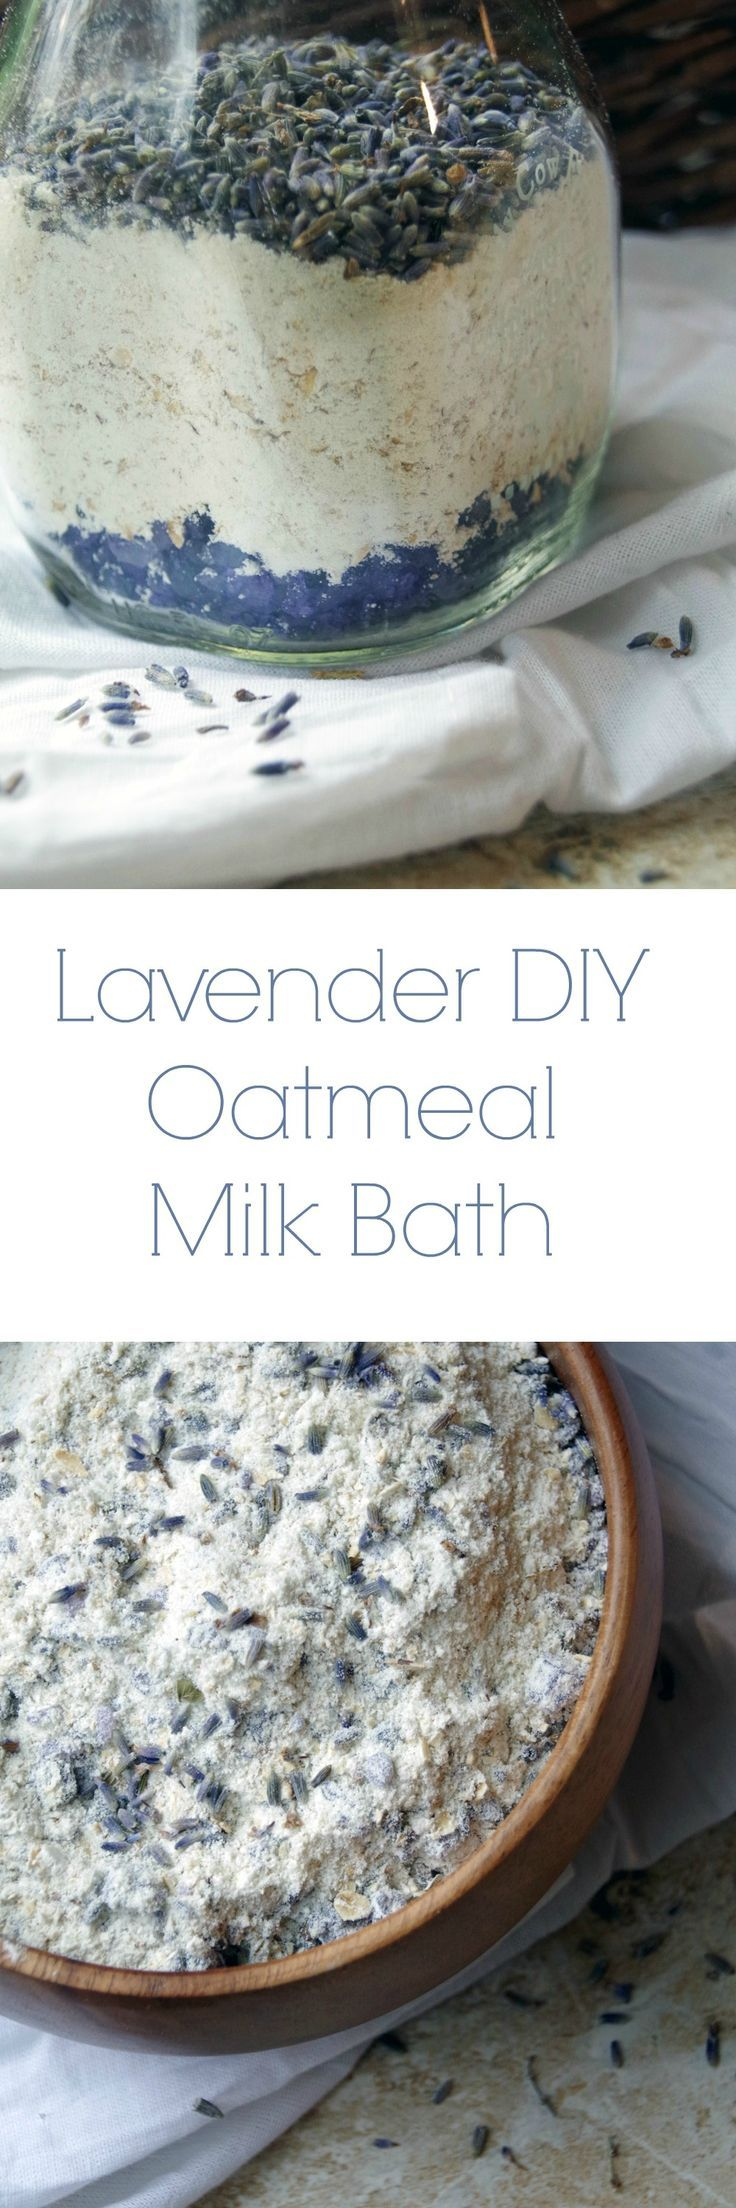 DIY Lavender Oatmeal Milk Bath to Sooth Dry Skin Naturally and Relax your Mind and Body